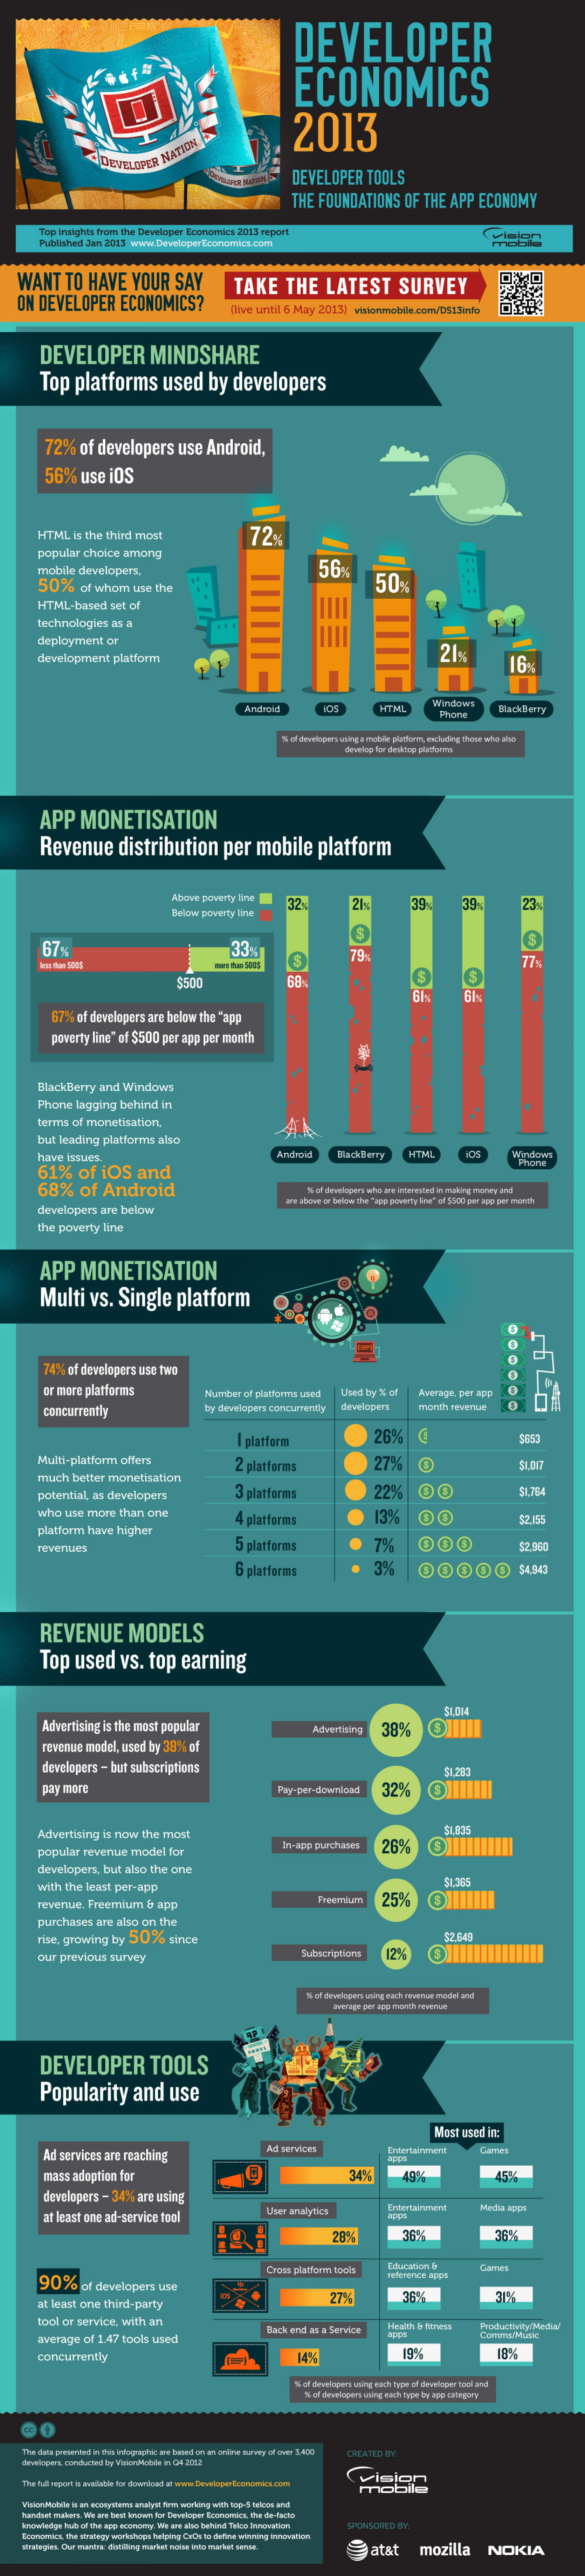 Dev Tools: Foundation of the app economy Infographic